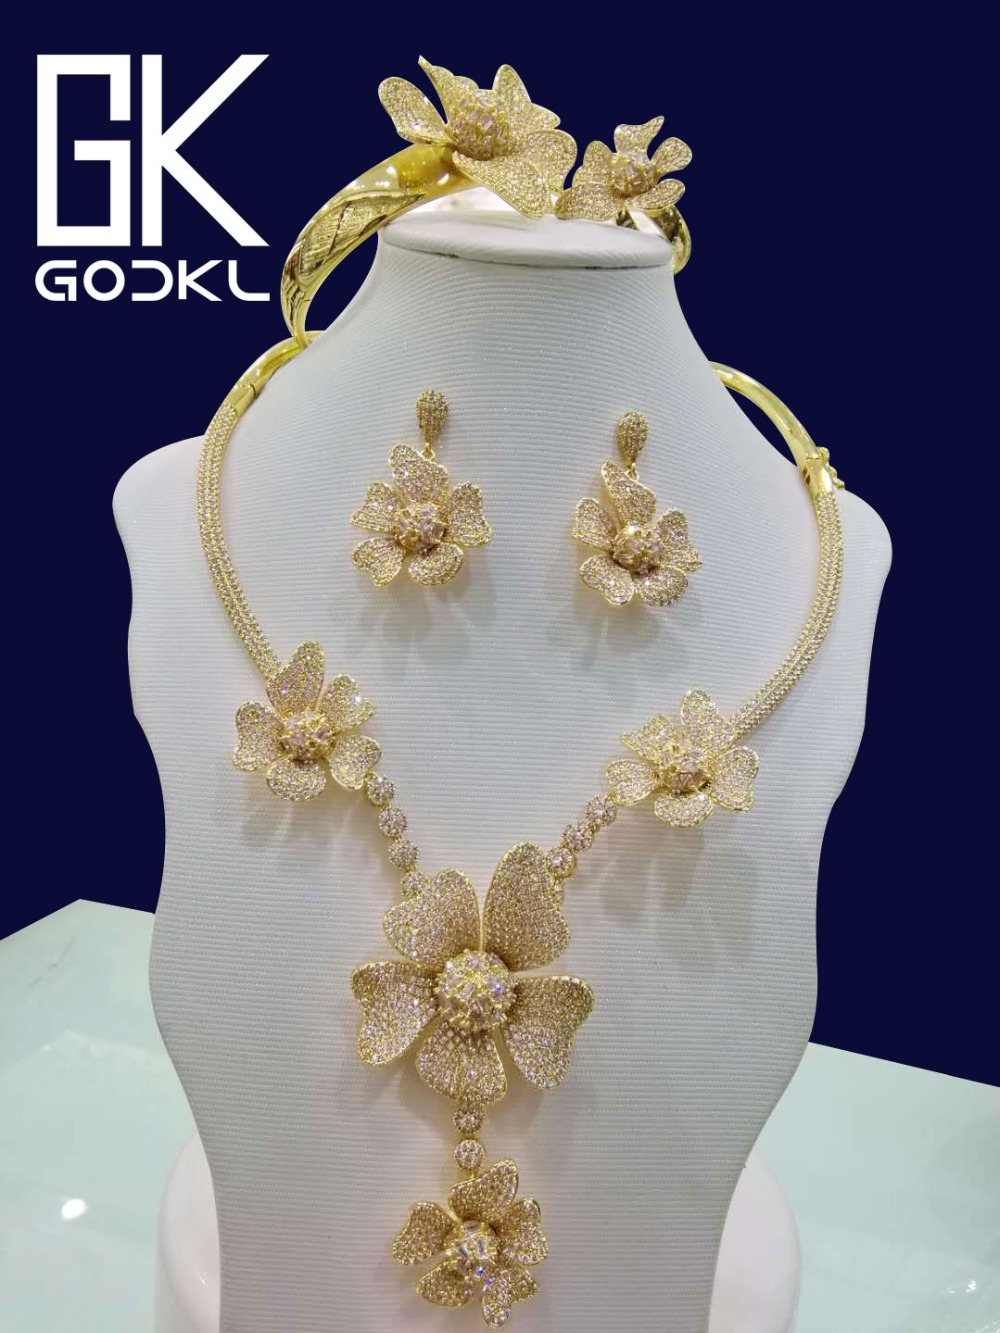 GODKI Luxury DUBAI GOLD Jewelry sets For Women Wedding Cubic Zirconia Flower African Jewelry Sets Nigerian